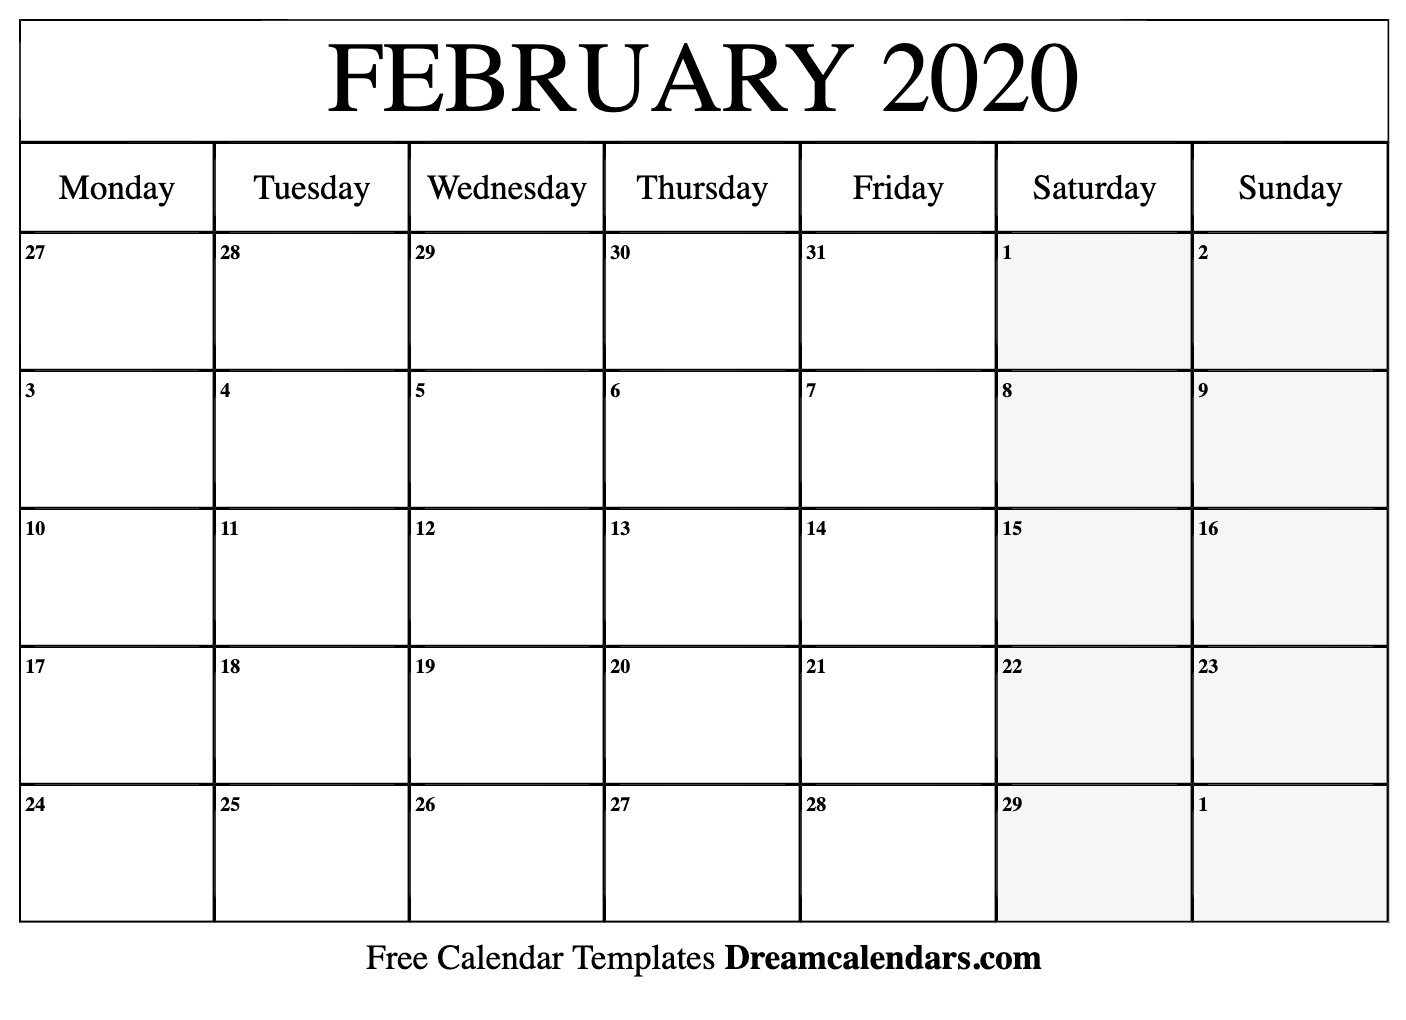 February 2020 Calendar Word Document Printable February 2020 Calendar